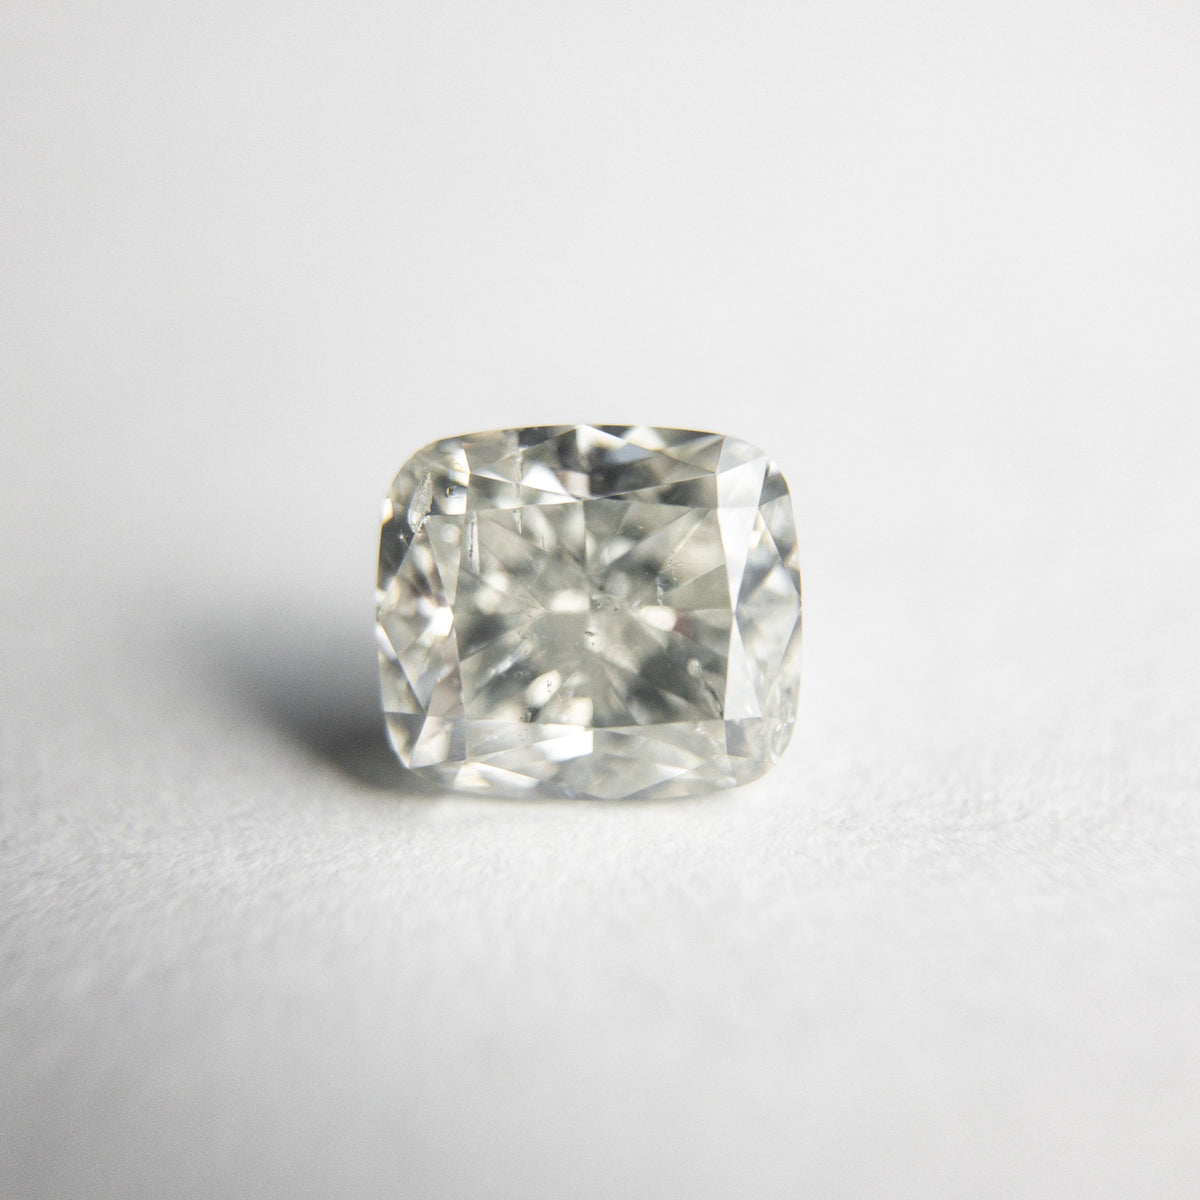 1.02ct 5.76x5.15x3.70mm Cushion Brilliant 18255-04